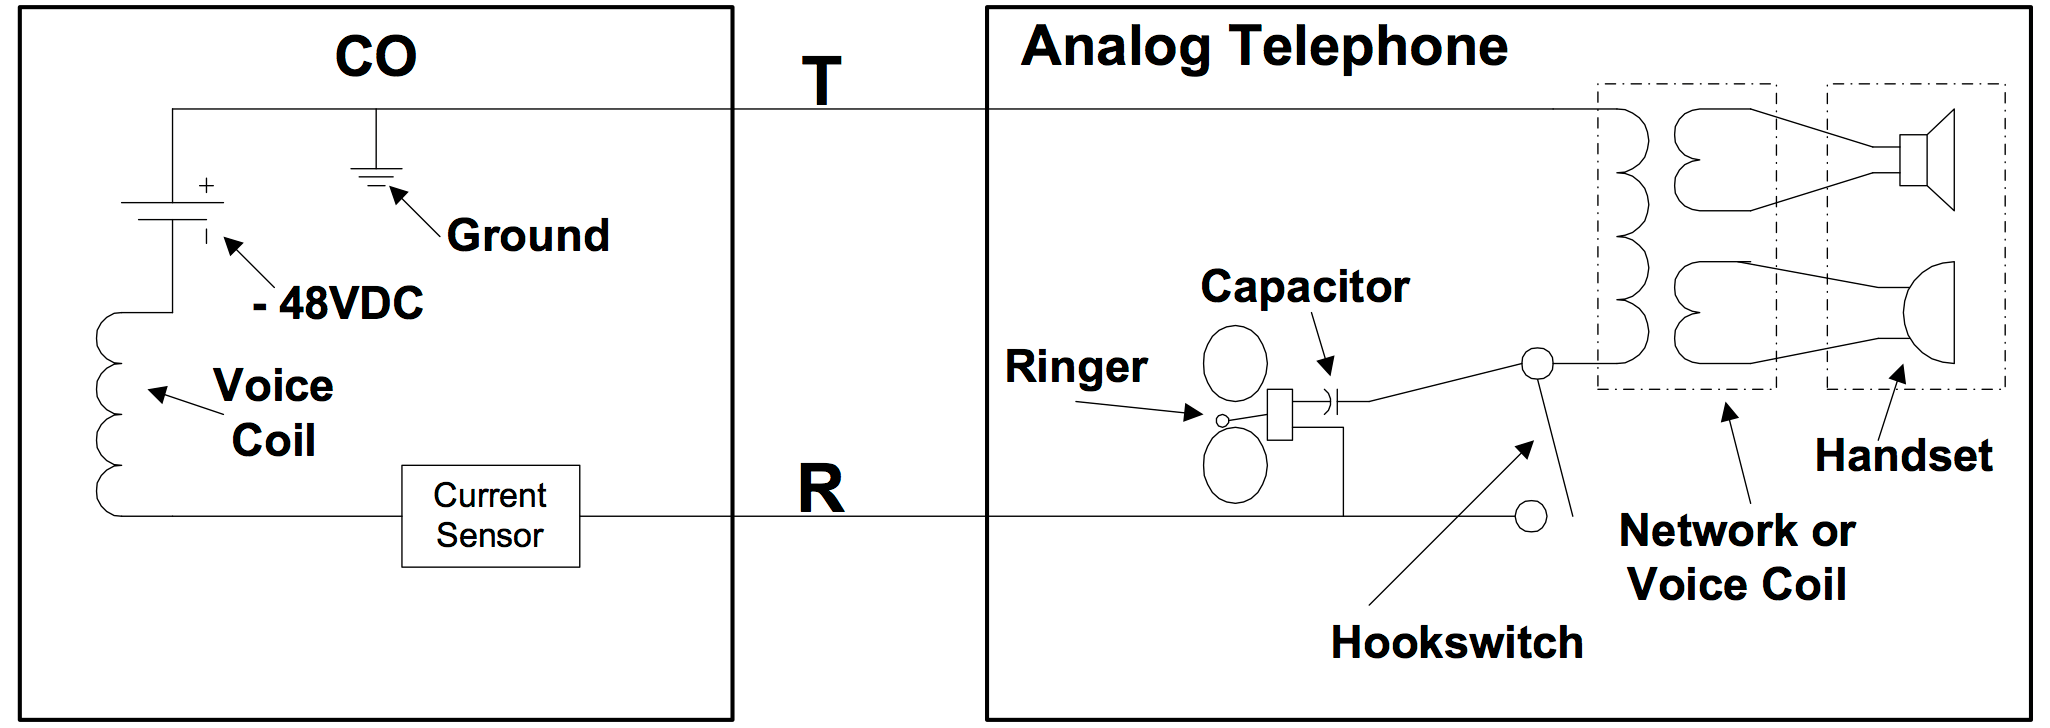 fig 5 all about analog lines Residential Telephone Wiring Diagram at pacquiaovsvargaslive.co